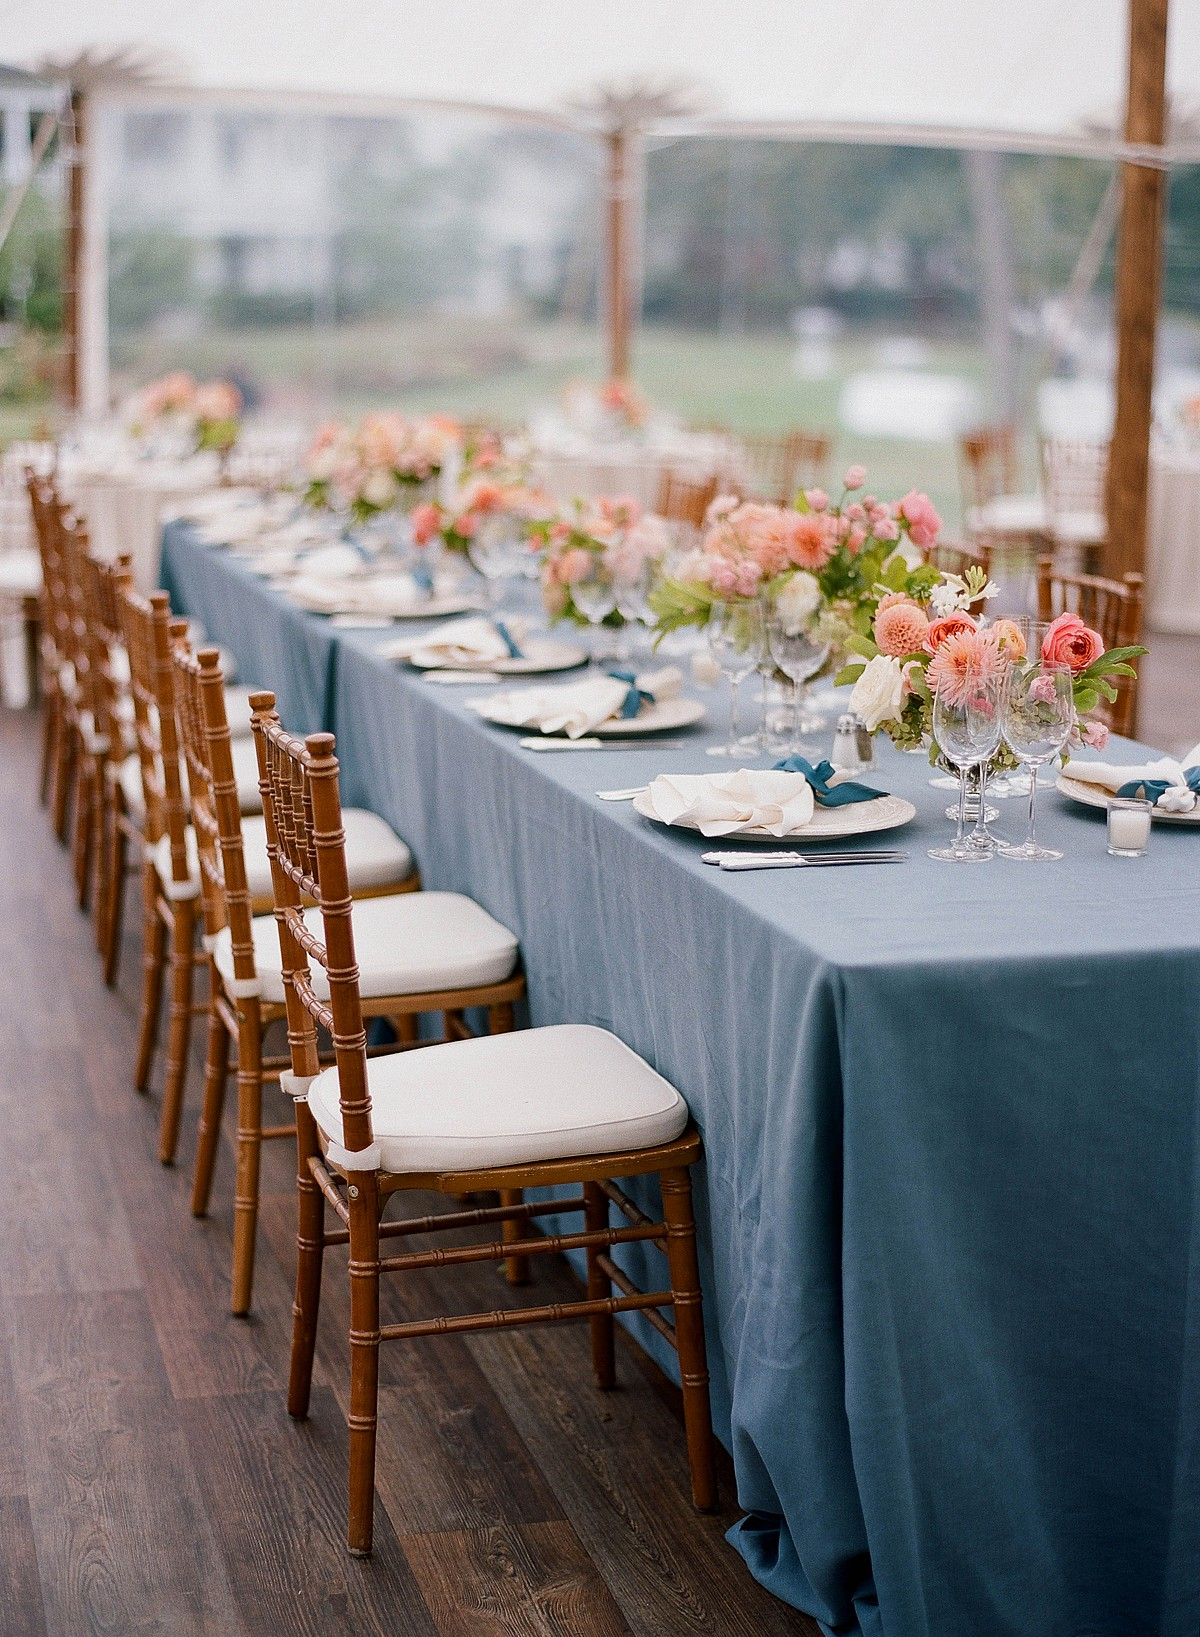 Cozy Fall Wedding at the Inn at Perry Cabin